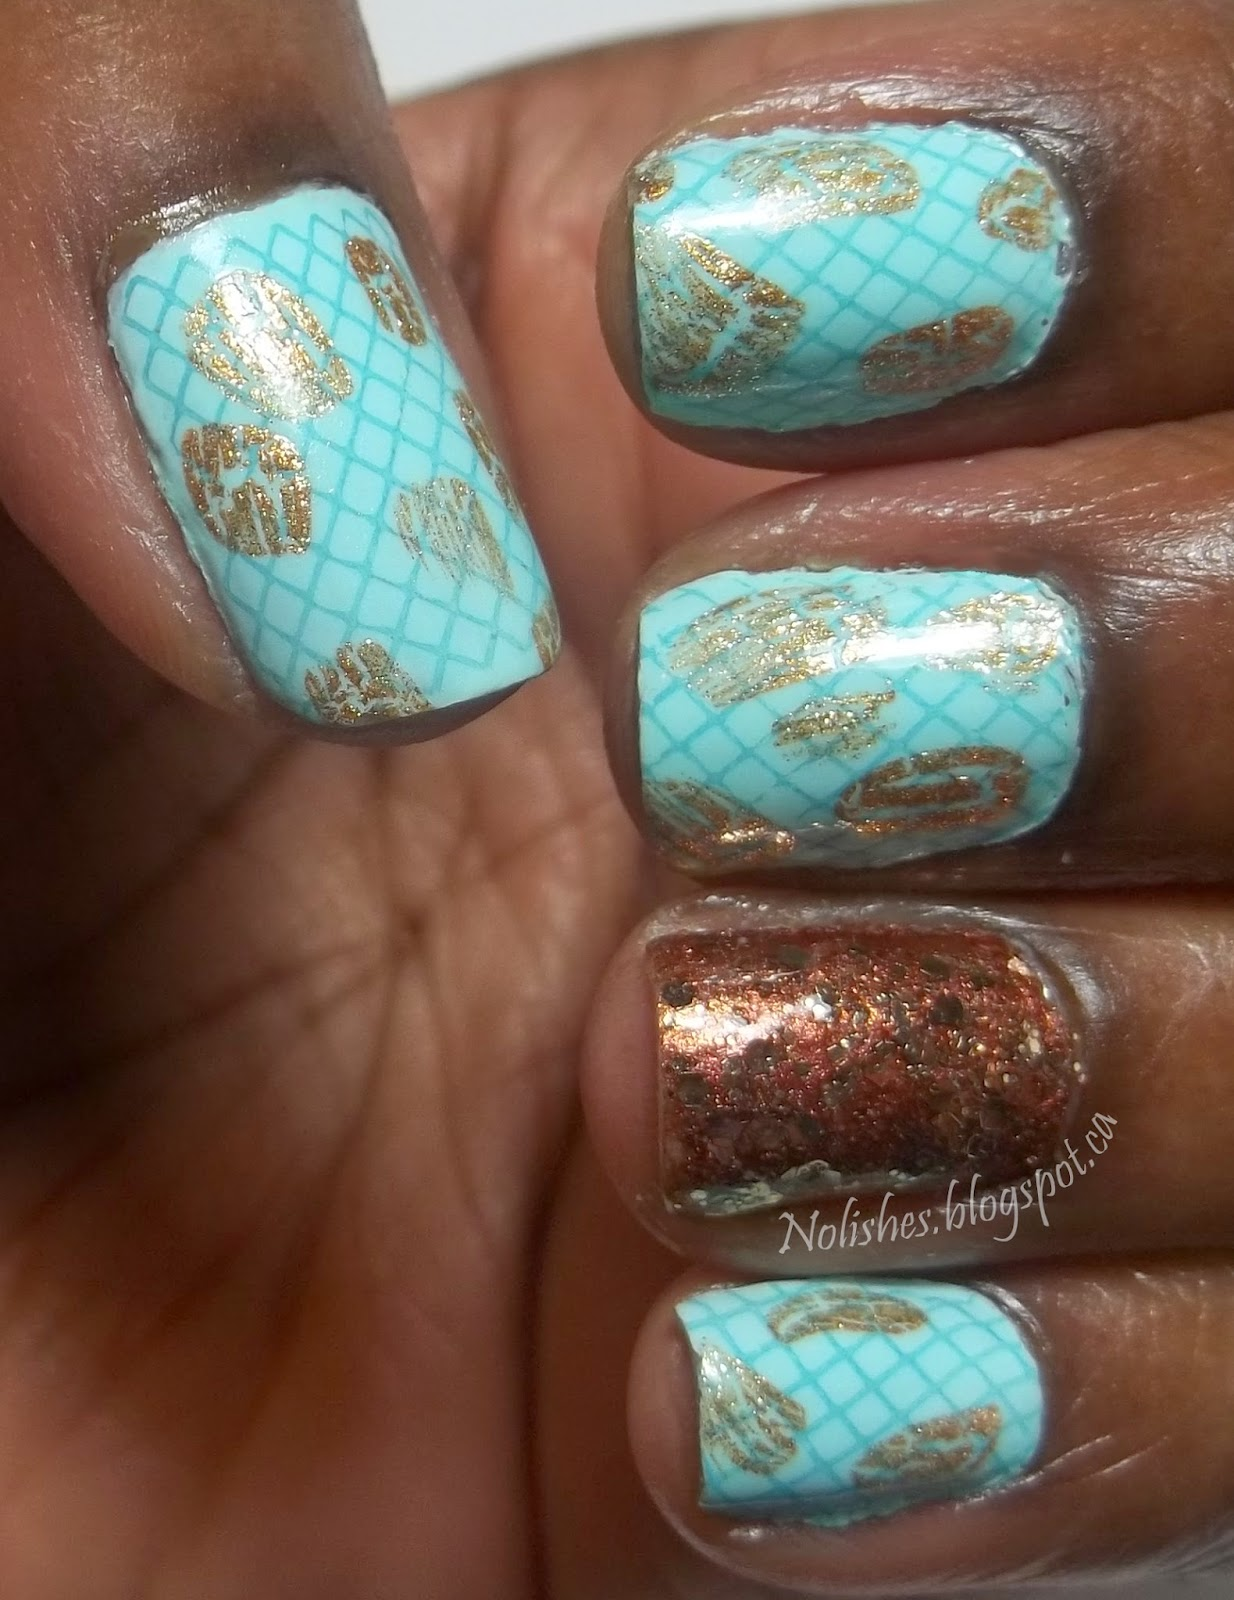 Nail stamping manicure featuring light blue polish on all nails except for ring finger, stamped with a medium blue thin lattice pattern, and then embellished with wisps of bronze crackle polish. The ring finger is painted with bronze polish, and covered in bronze glitter.